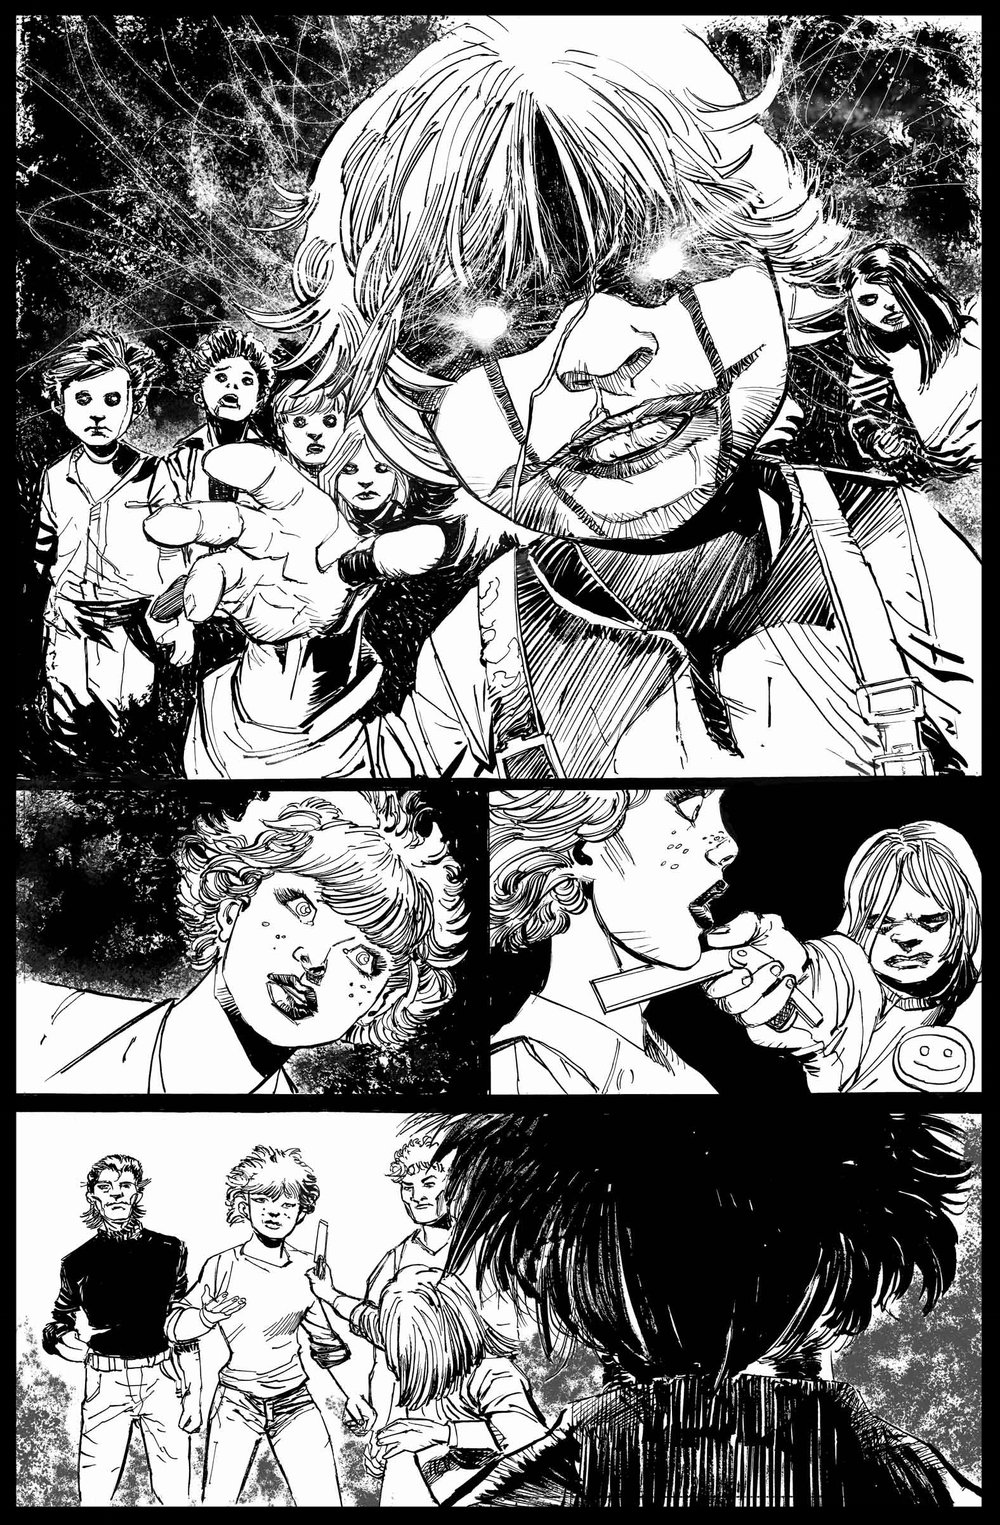 Brimstone #6 - Page 1 - Pencils & Inks